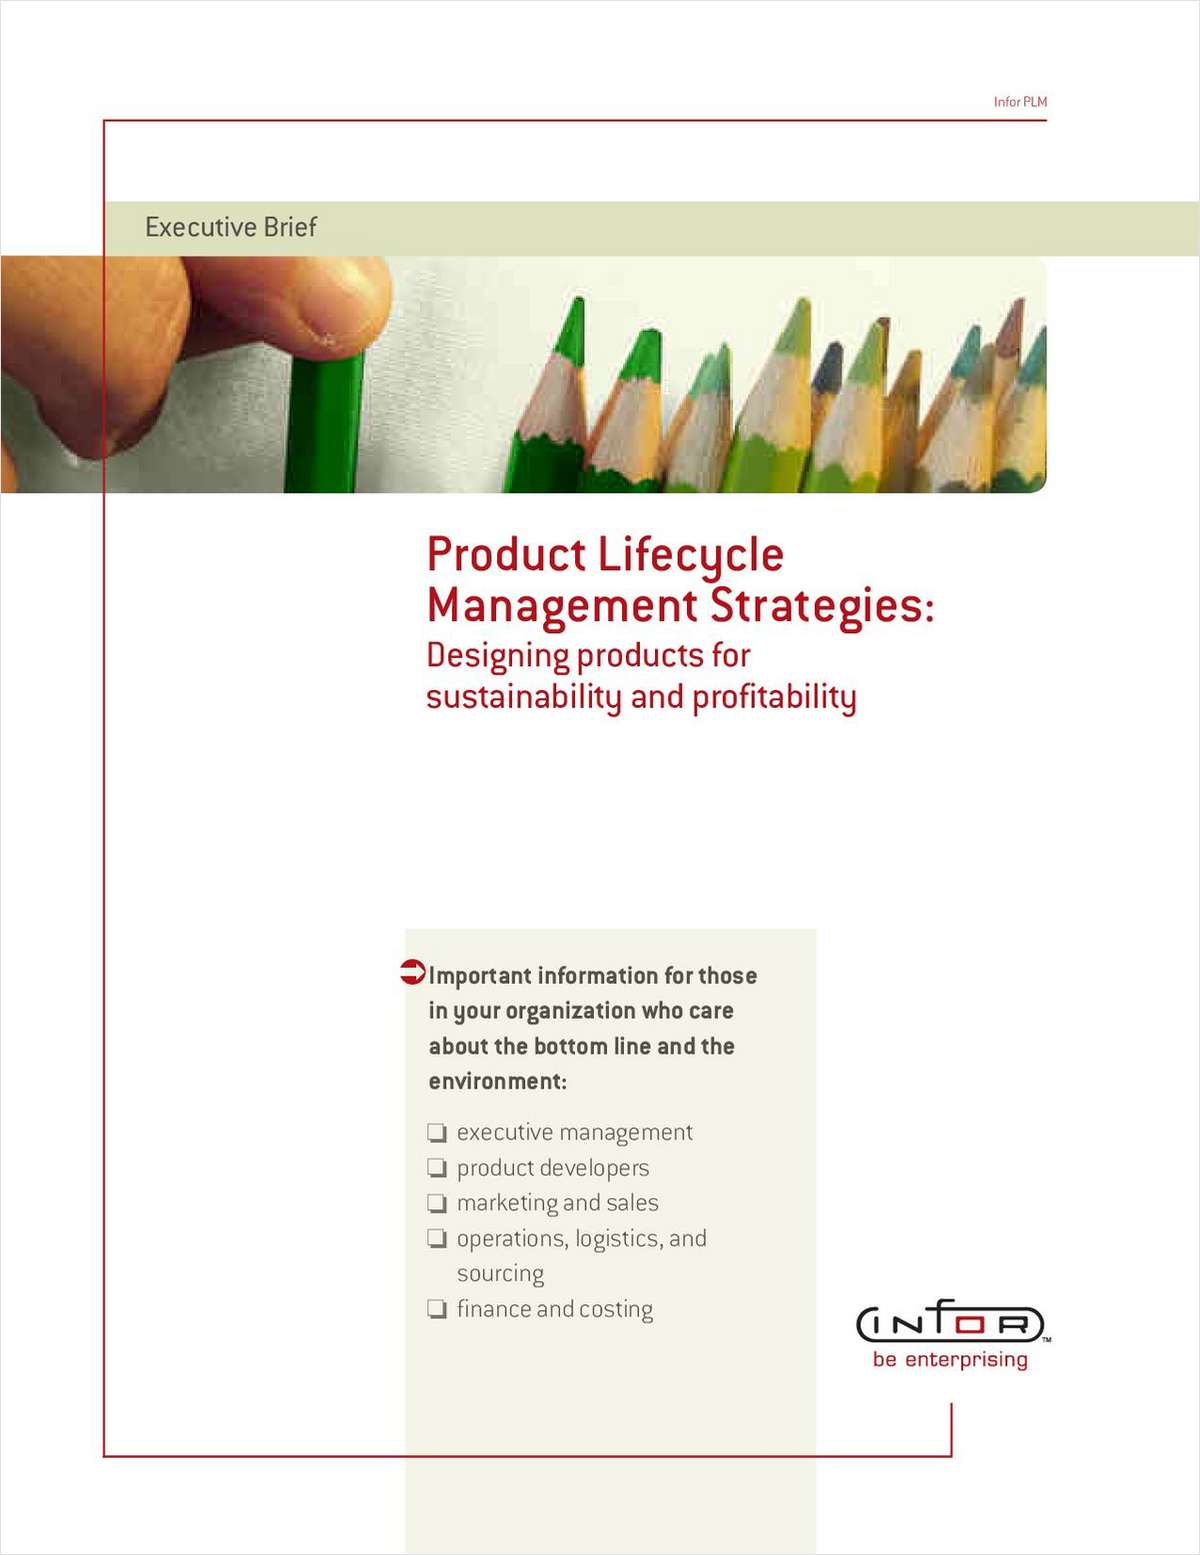 Lifecycle Management Strategies: Designing Products for Sustainability and Profitability